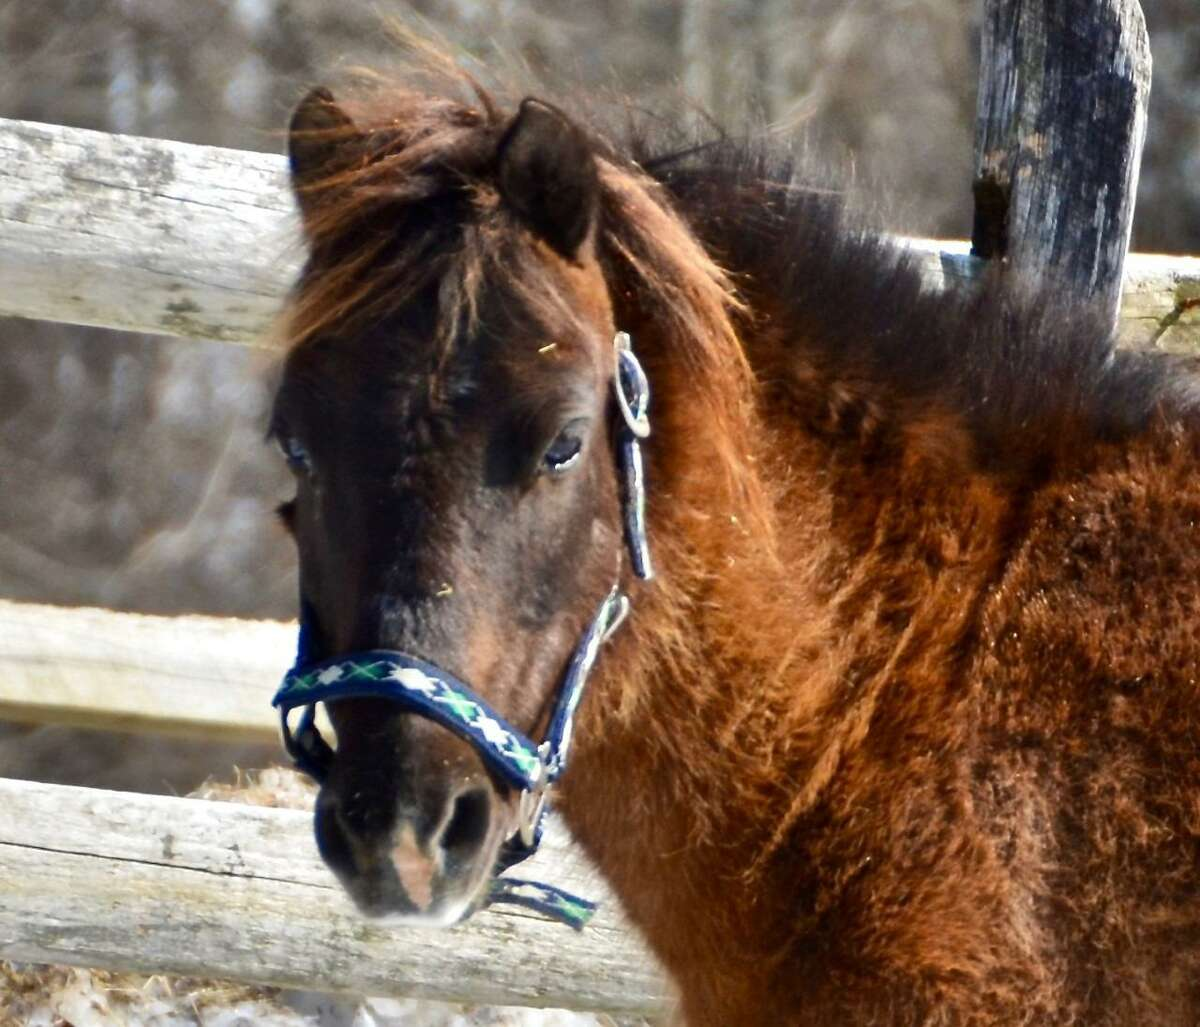 Riot is one of Horse of CT's rescue horses.